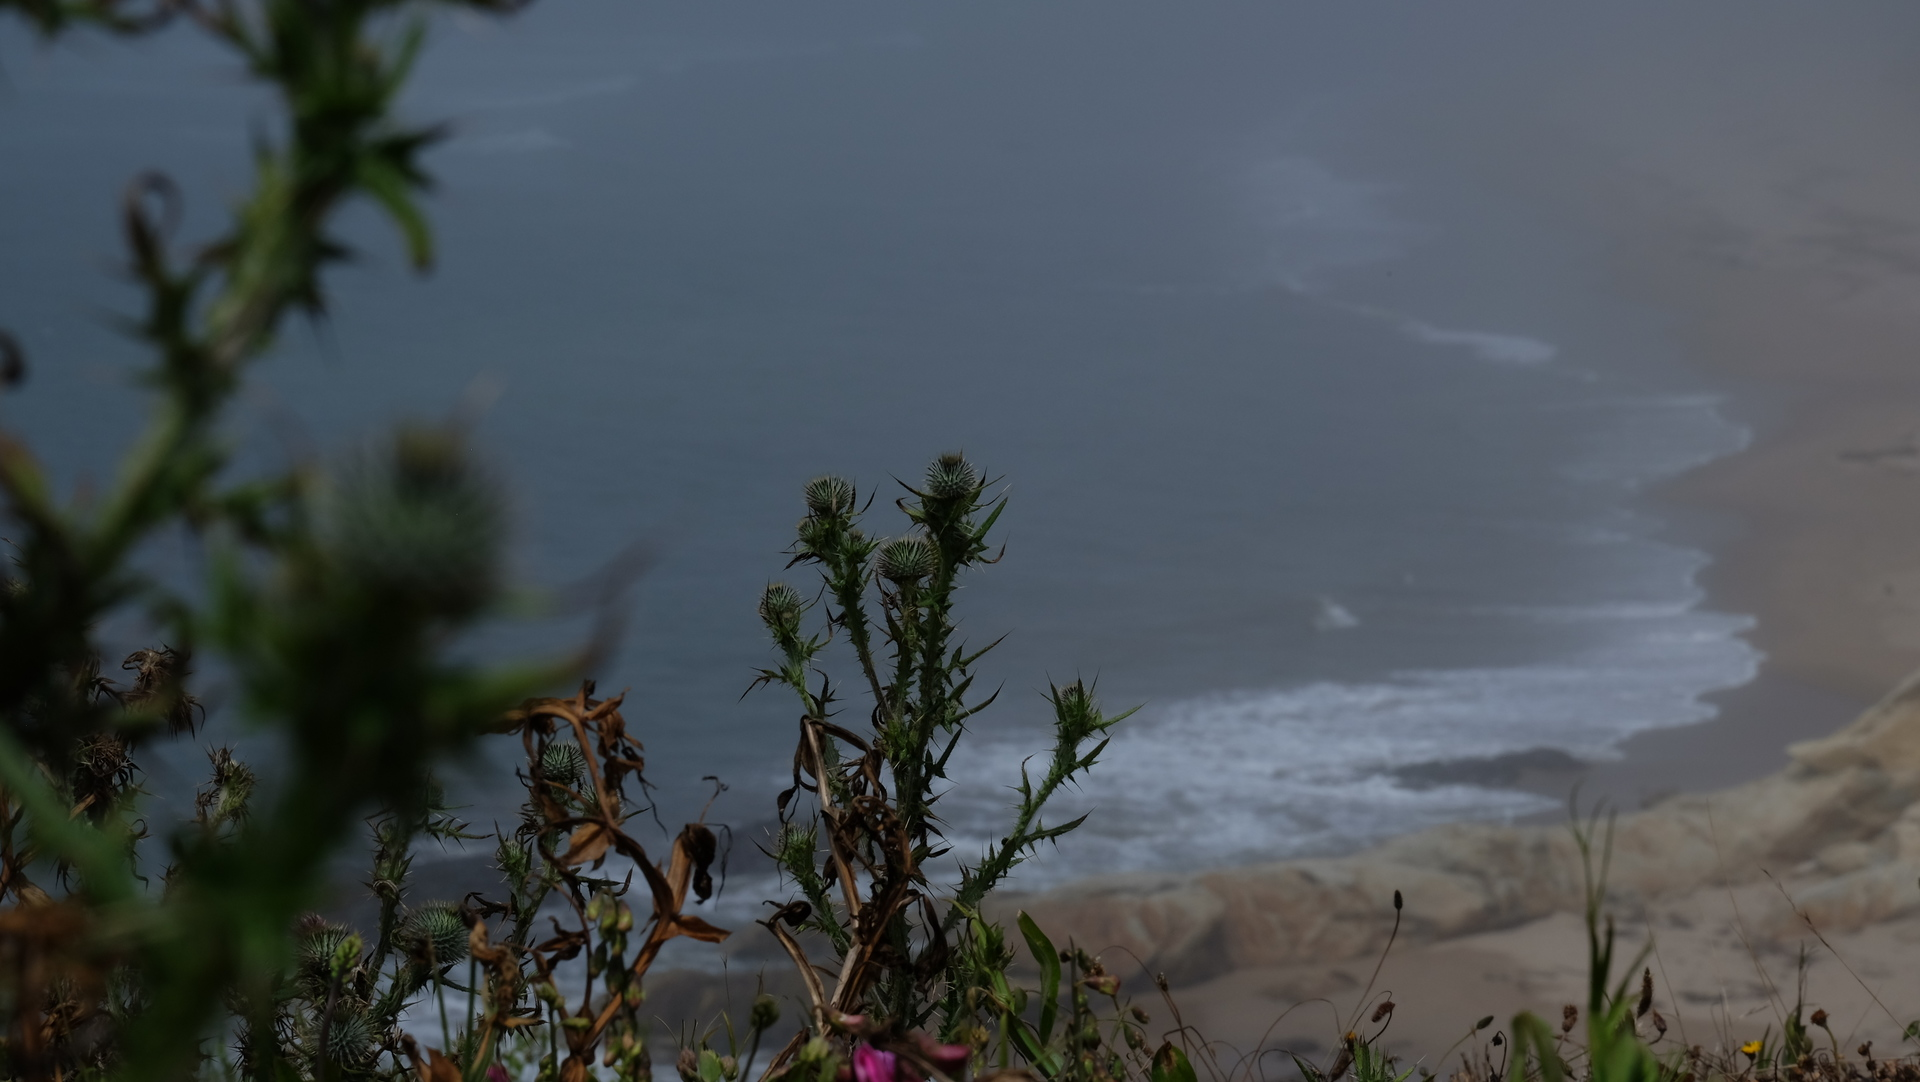 Thistle growing on coast | tschat, thistle, landscape, nature